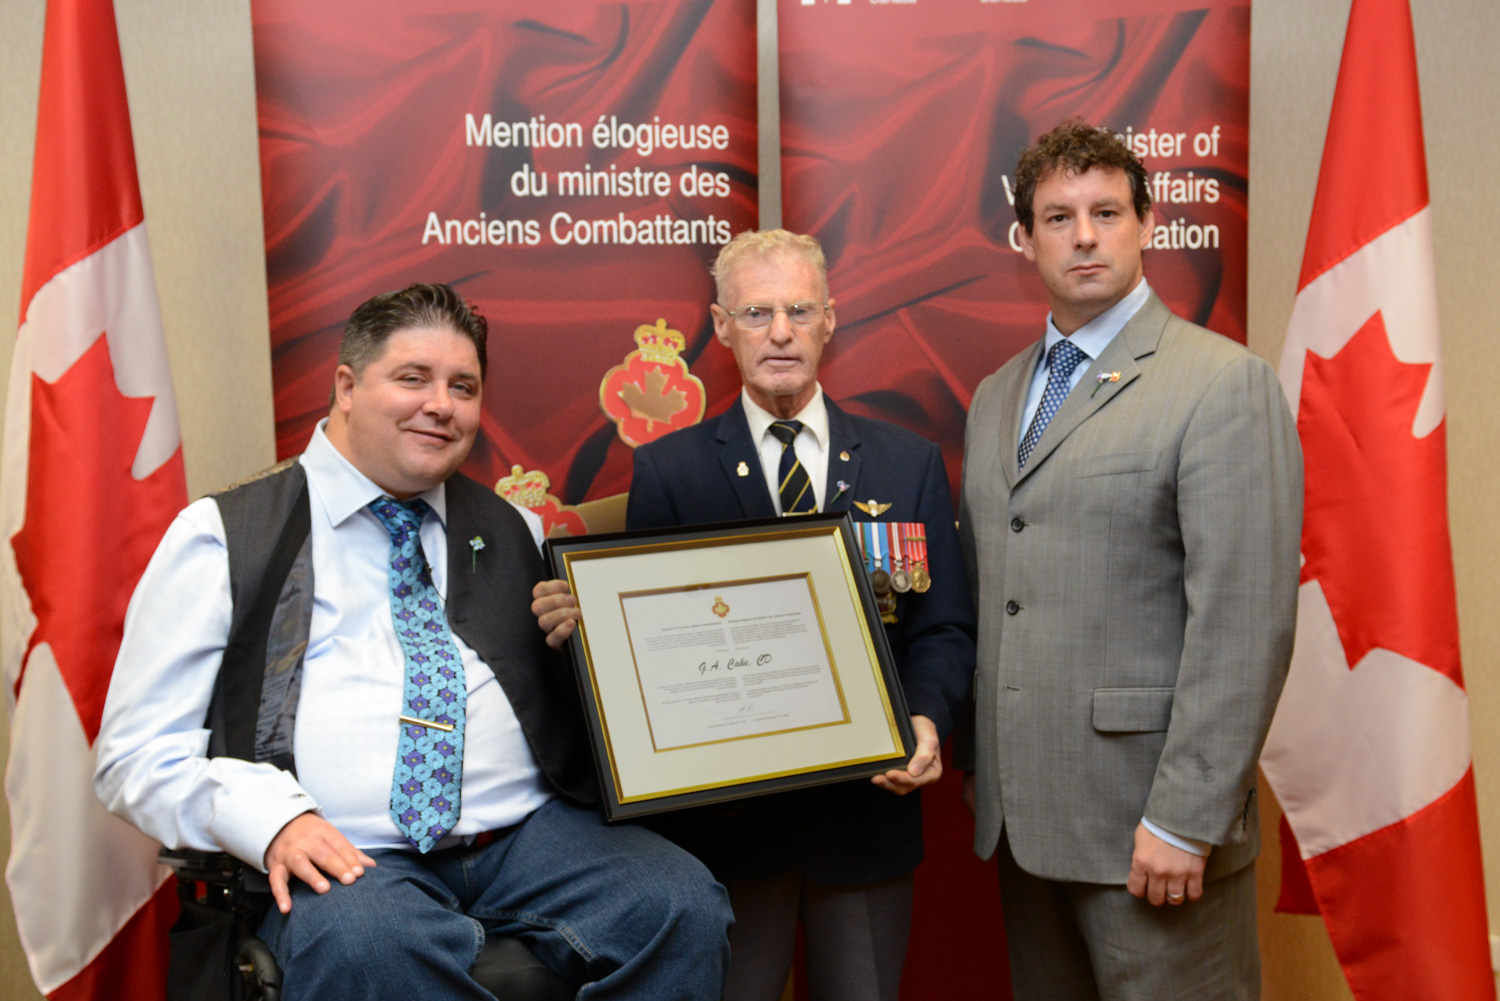 The honorable Kent Hehr, Minister for Veterans Affairs, Mr. George Cake, and Nick Whalen, Member of Parliament for St. John's East.